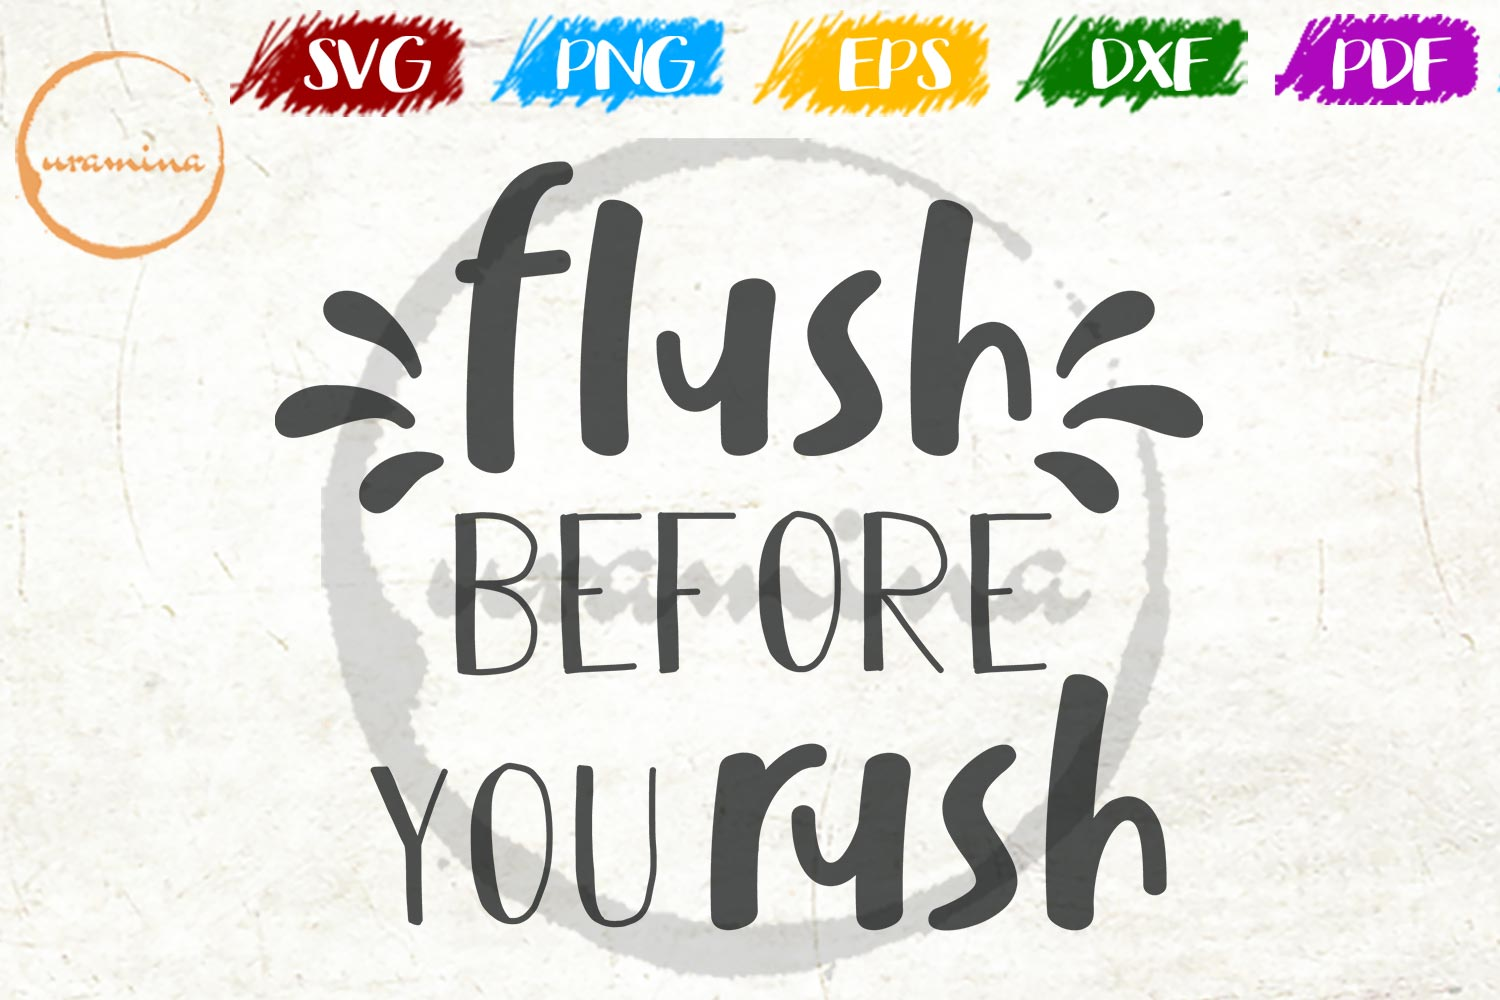 Download Free Flush Before You Rush Funny Bathroom Graphic By Uramina for Cricut Explore, Silhouette and other cutting machines.